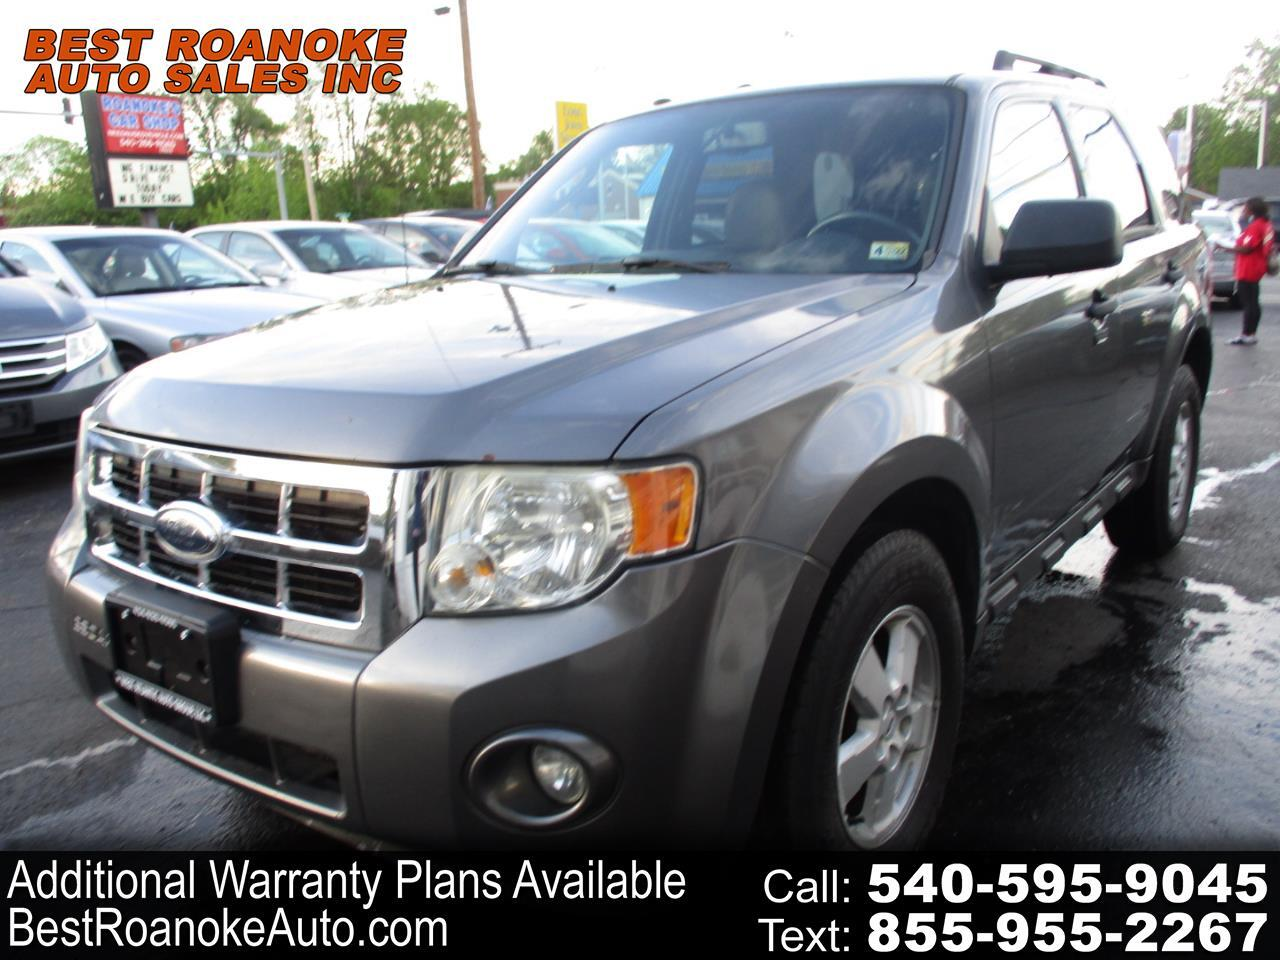 Ford Escape 4WD 4dr I4 Auto XLT 2009